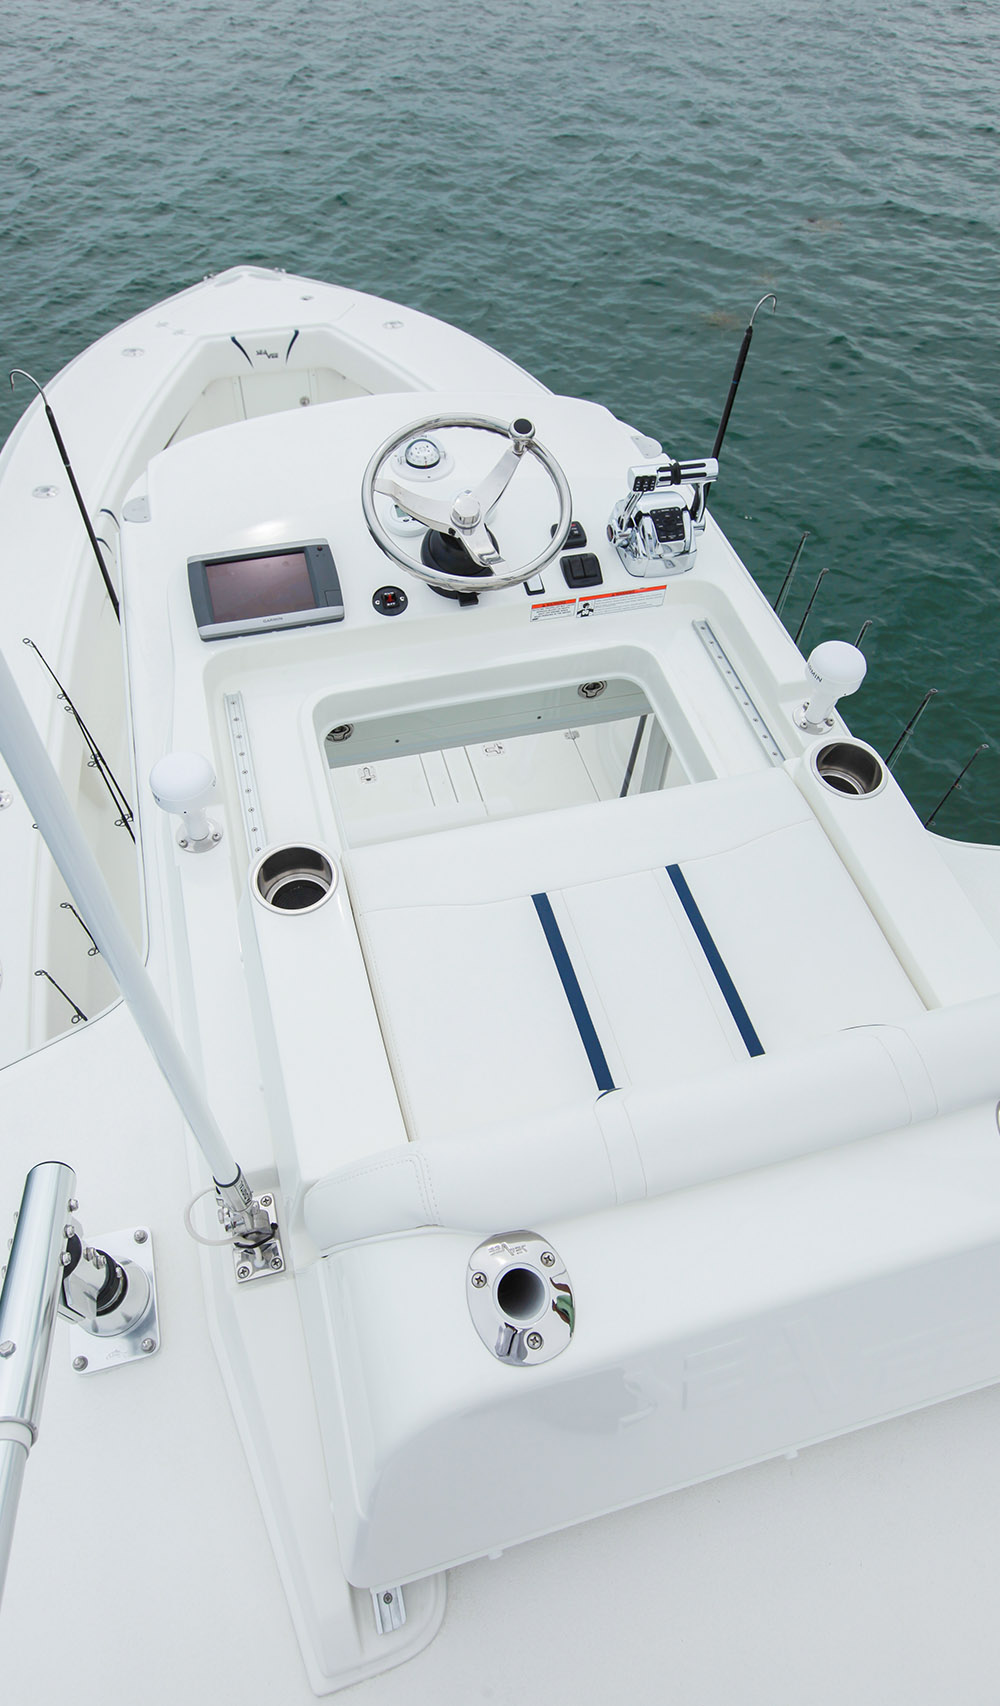 Seavee 320 Model Info Center Console Fishing Boat